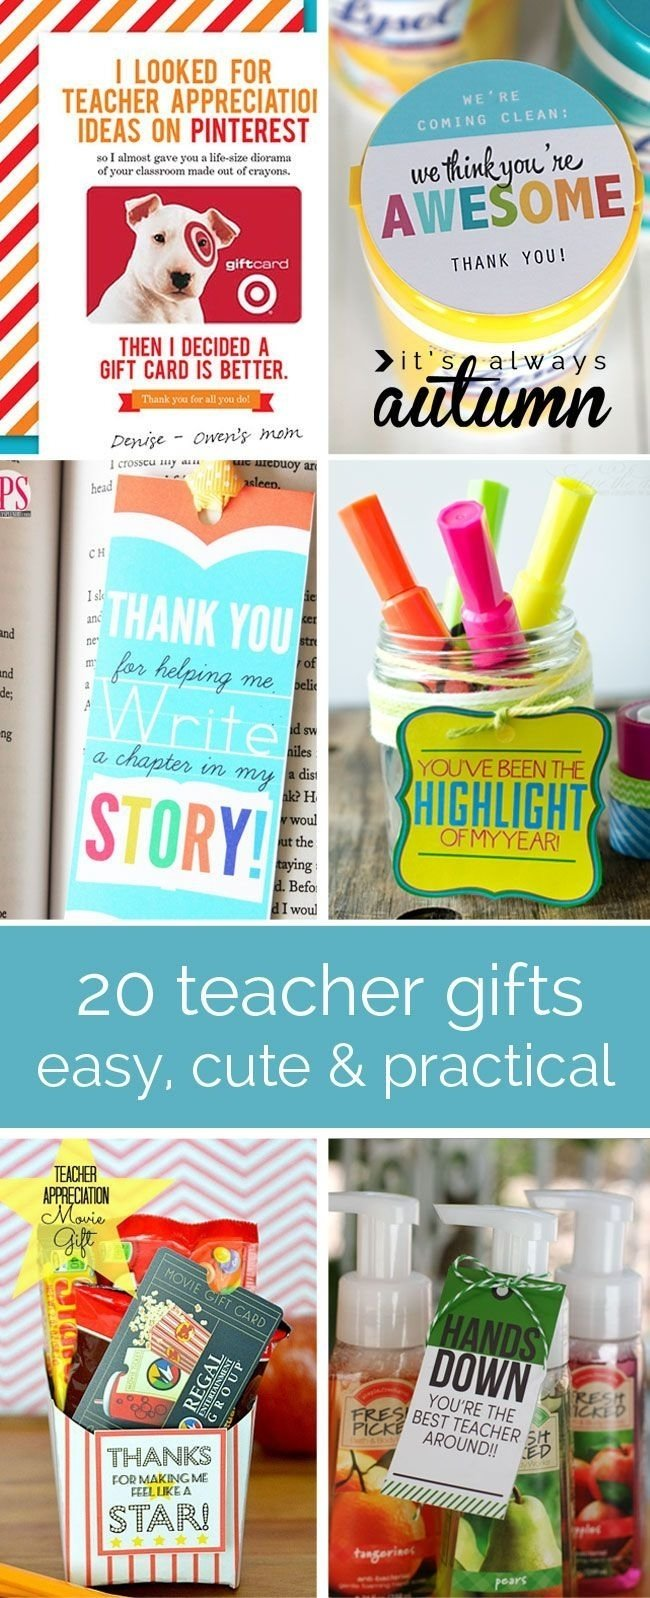 10 Most Recommended Cute Ideas For Teacher Appreciation Week 47 best teacher appreciation and end of year gift ideas images on 2020